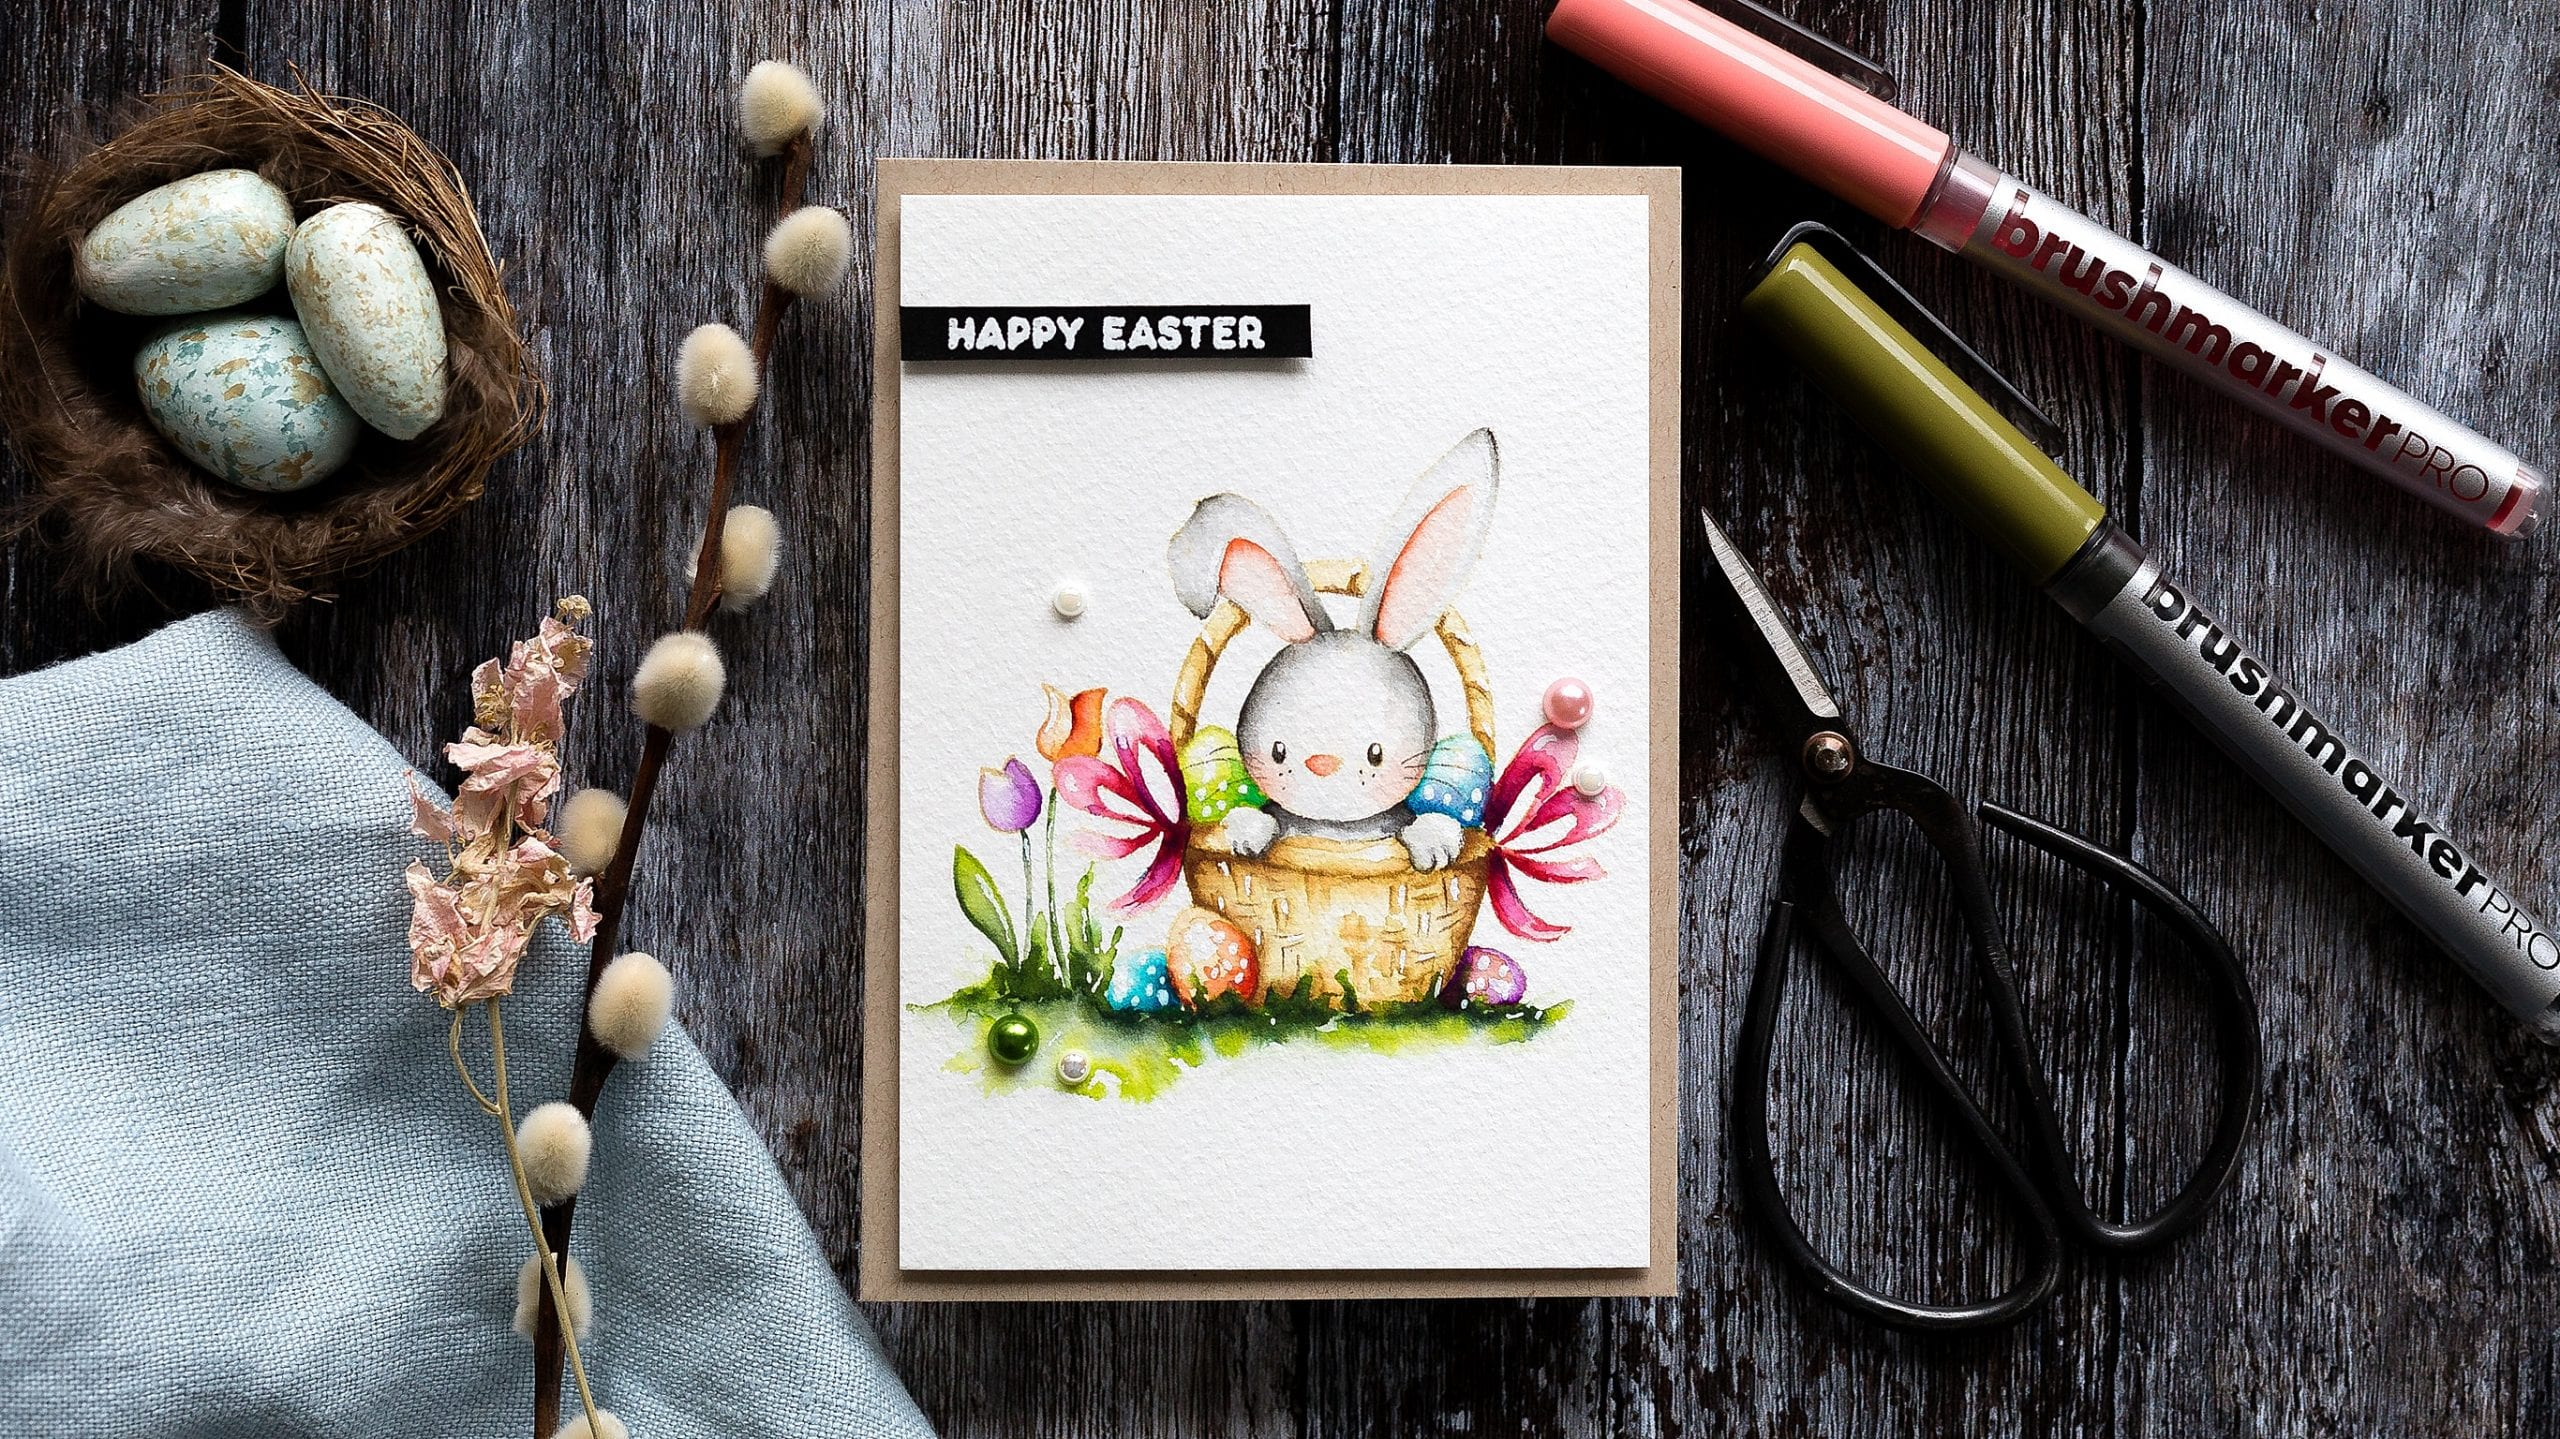 Video tutorial - watercoloured cute Easter bunny + Karin brushmarker Pro review. Handmade card by Debby Hughes using supplies from Simon Says Stamp #watercolor #homemade